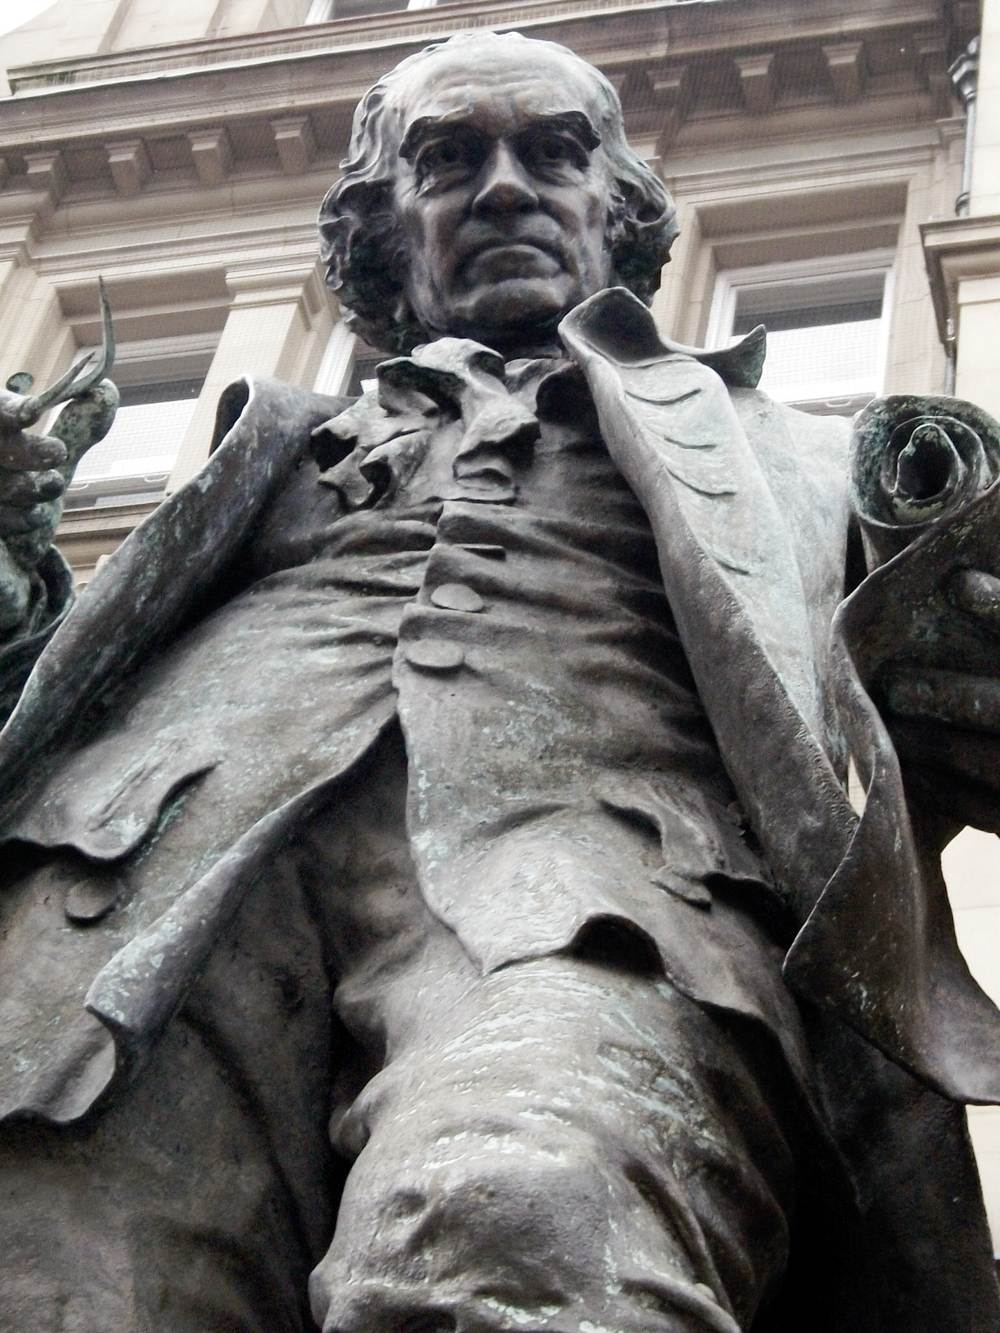 James Watt Statue   by  DncnH  is  licensed under   CC BY 2.0.